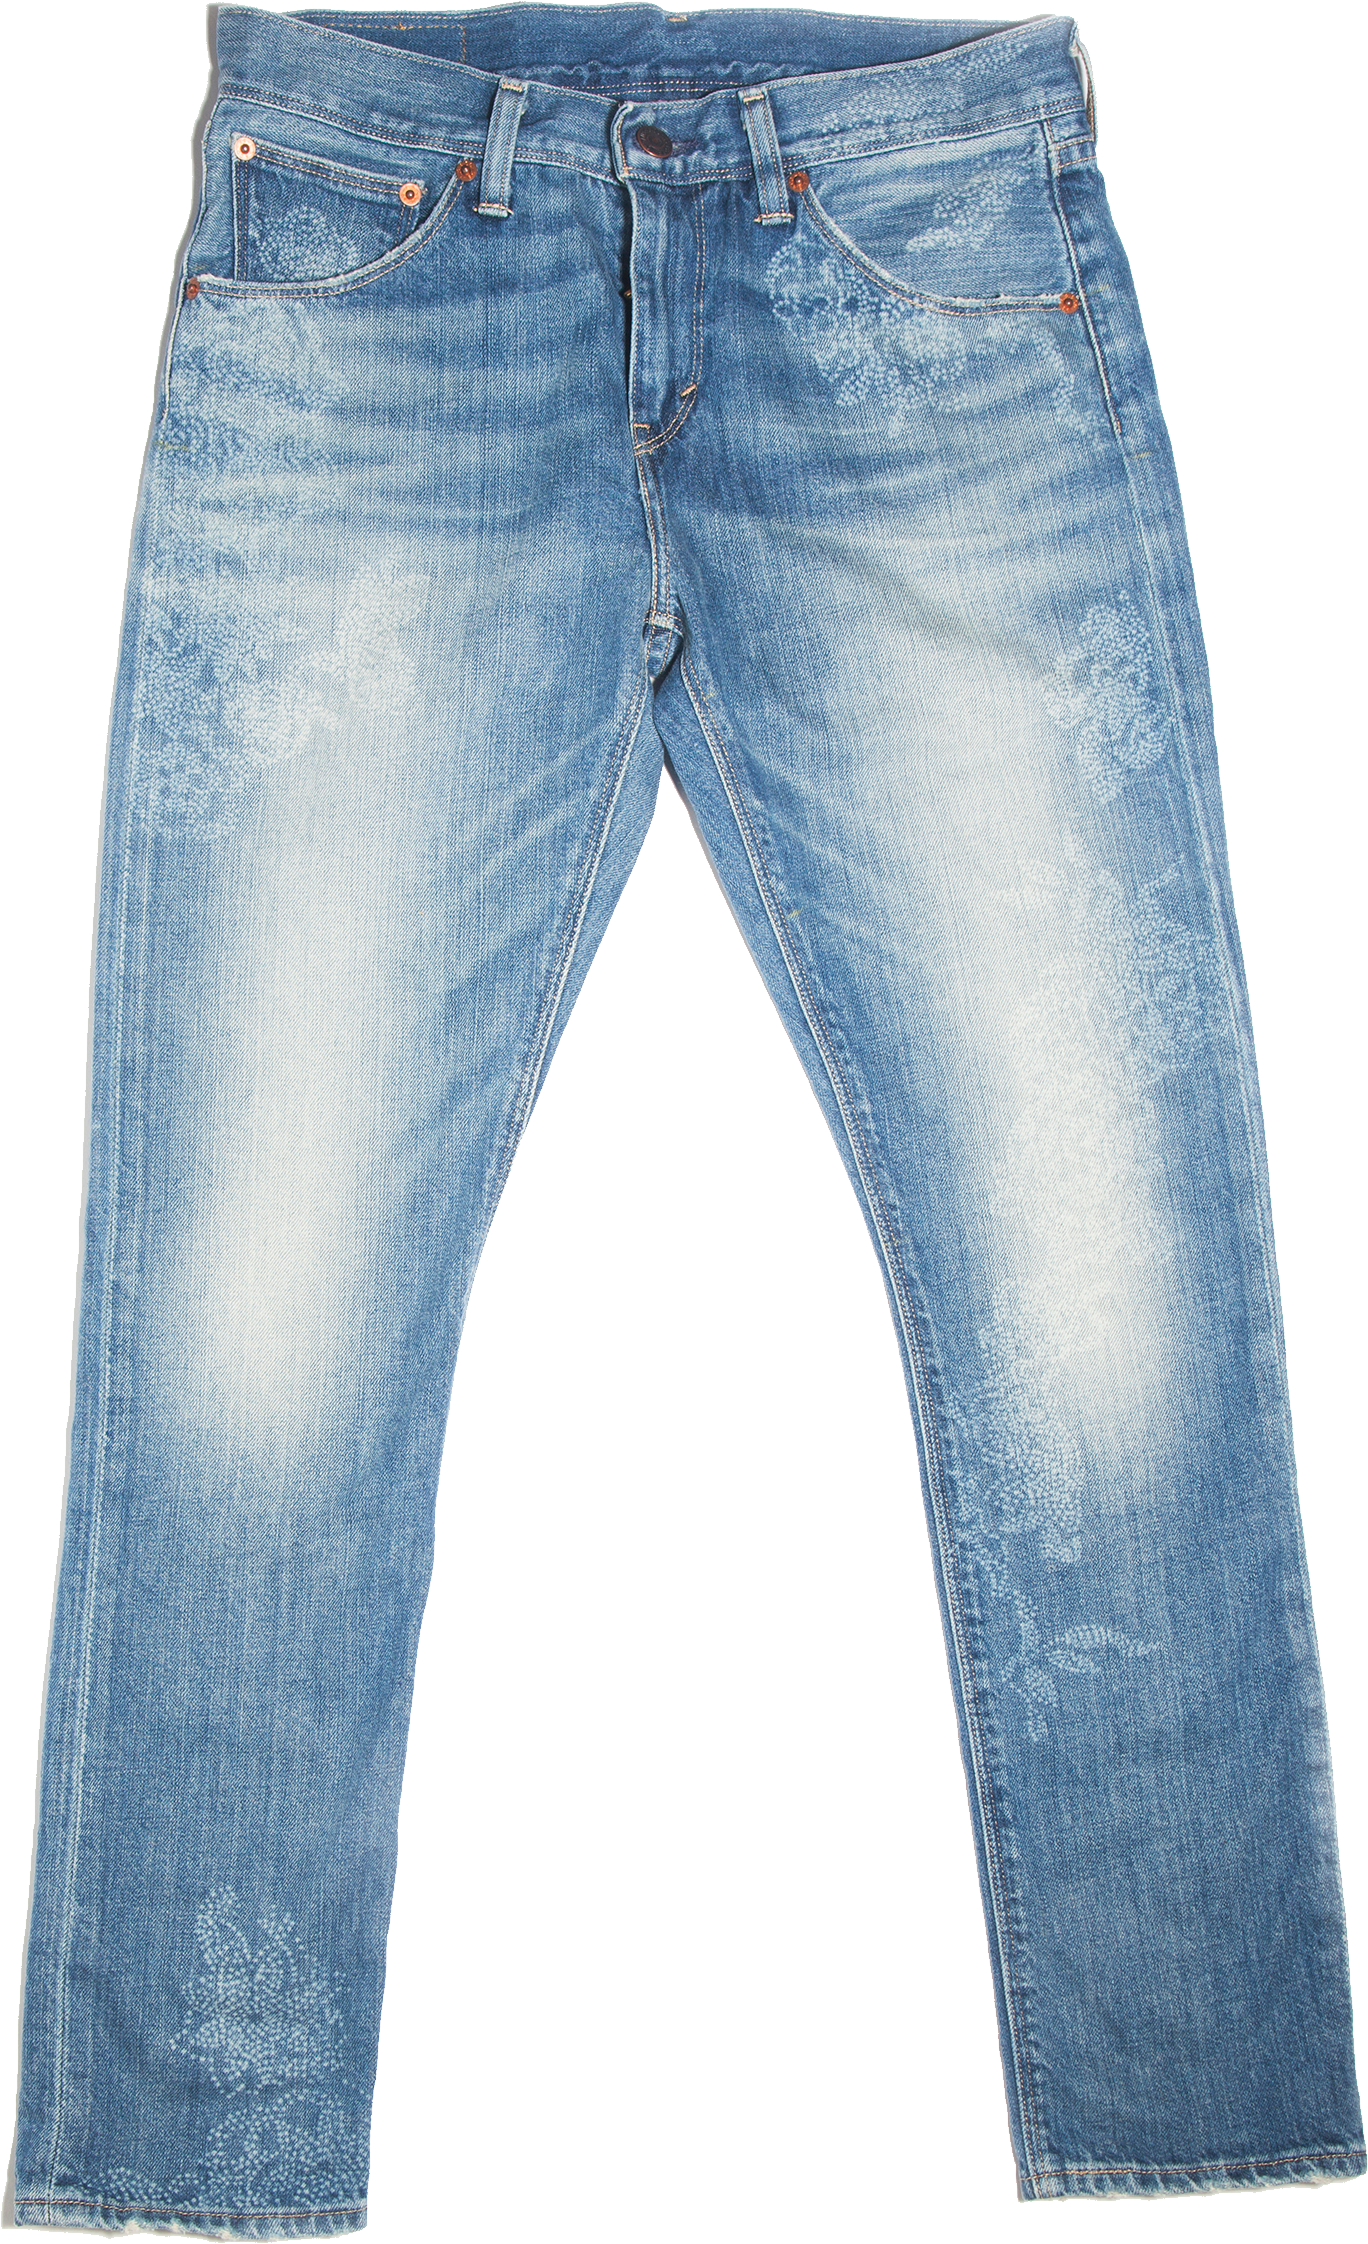 jeans vector tag